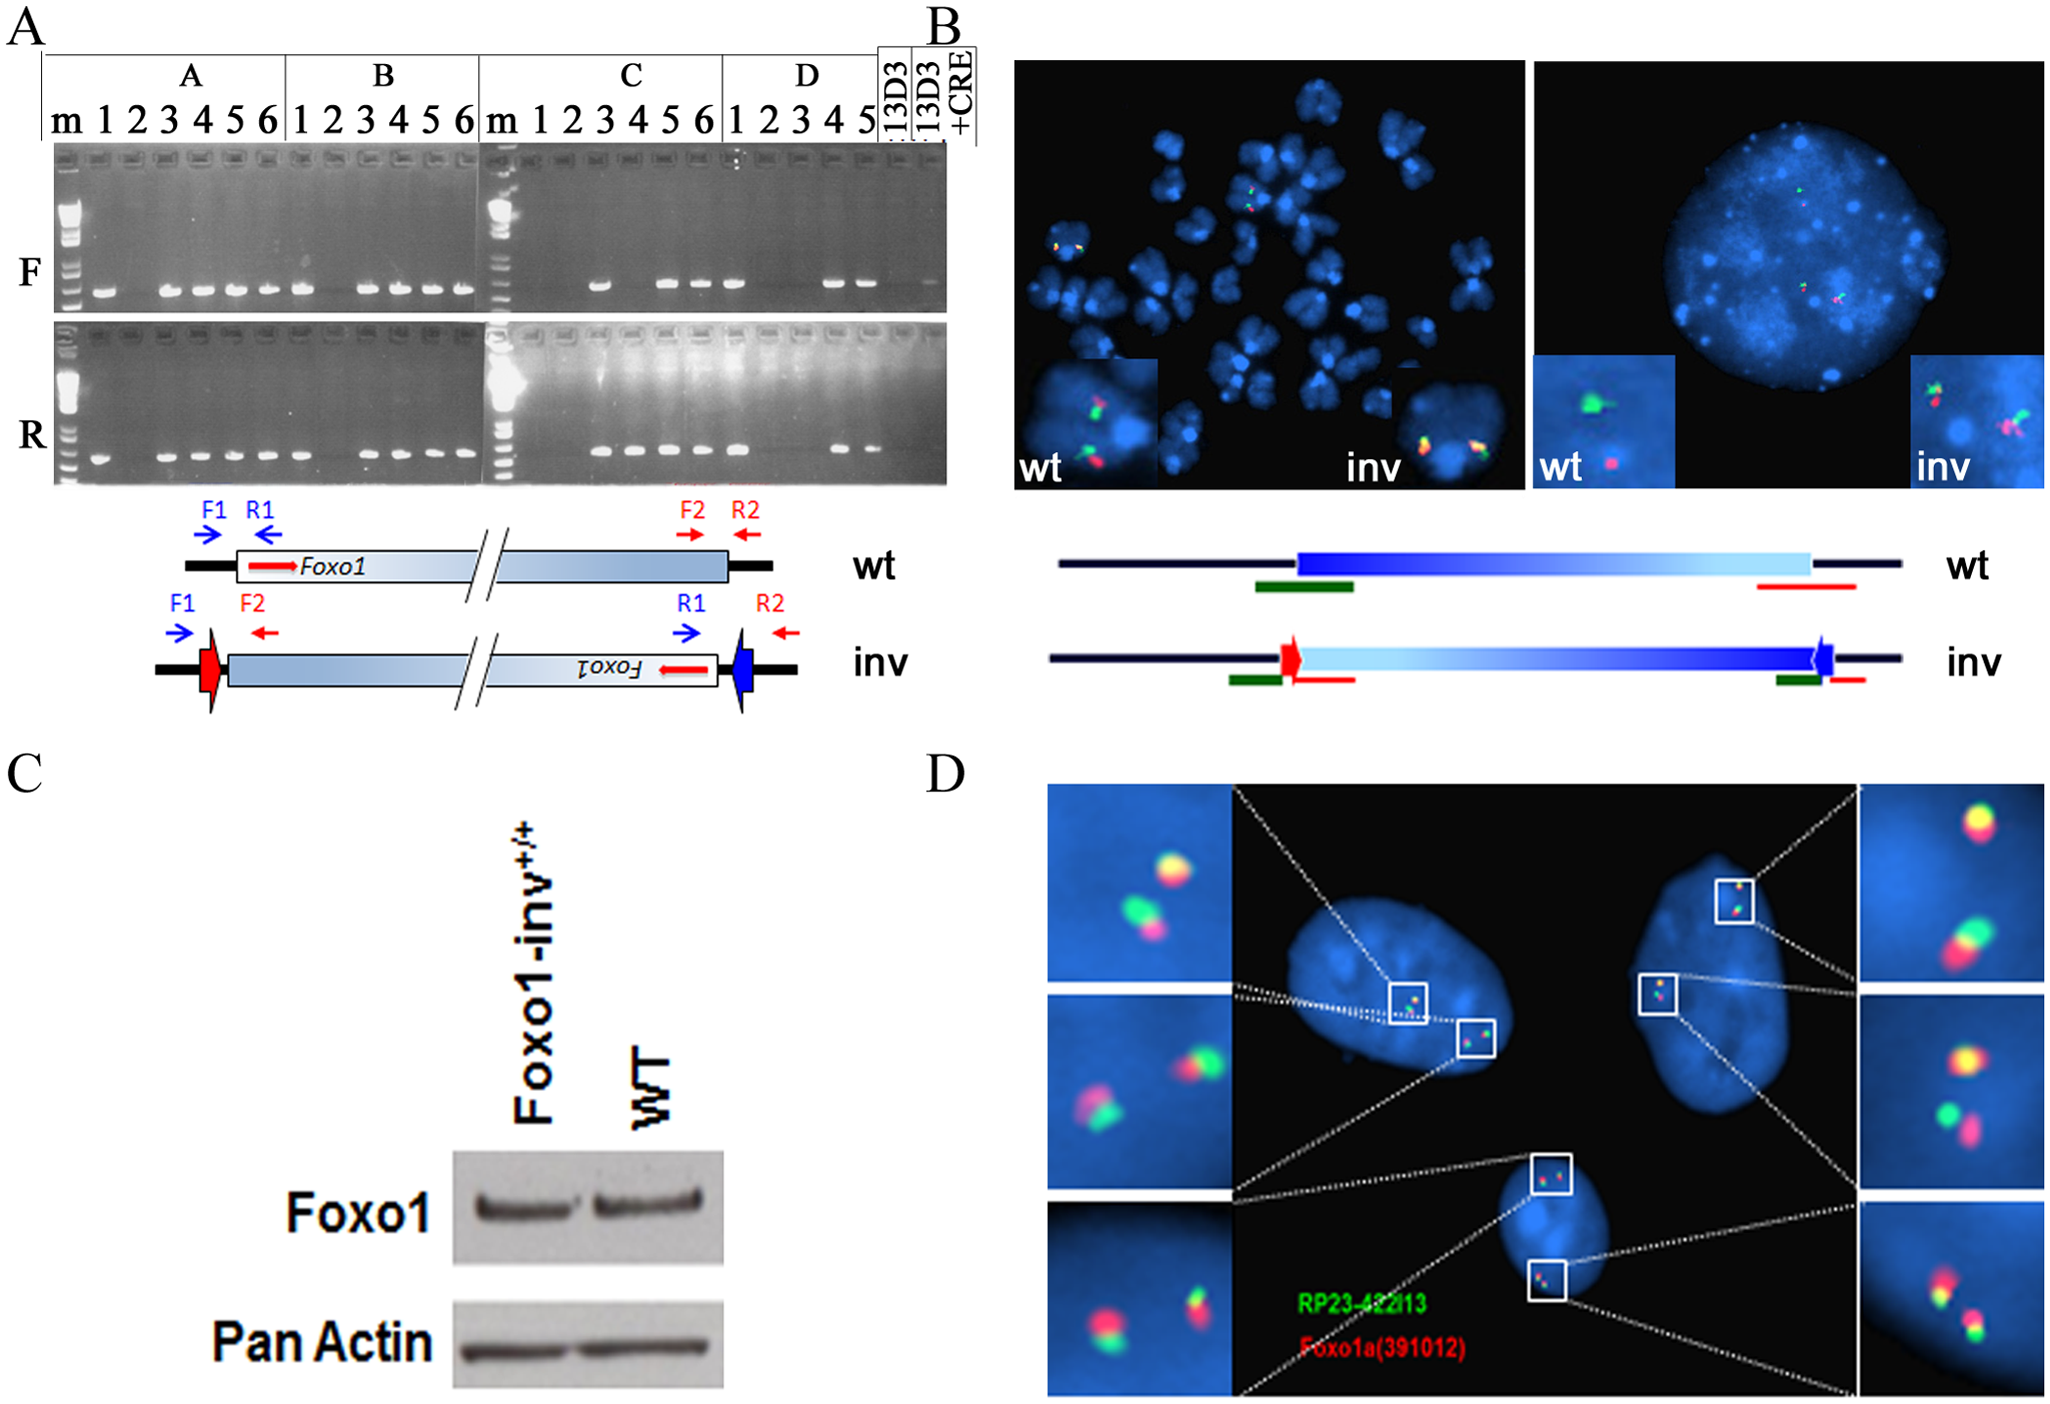 Analyses of inversion of the 4.9Mb syntenic region in double targeted ES cells.